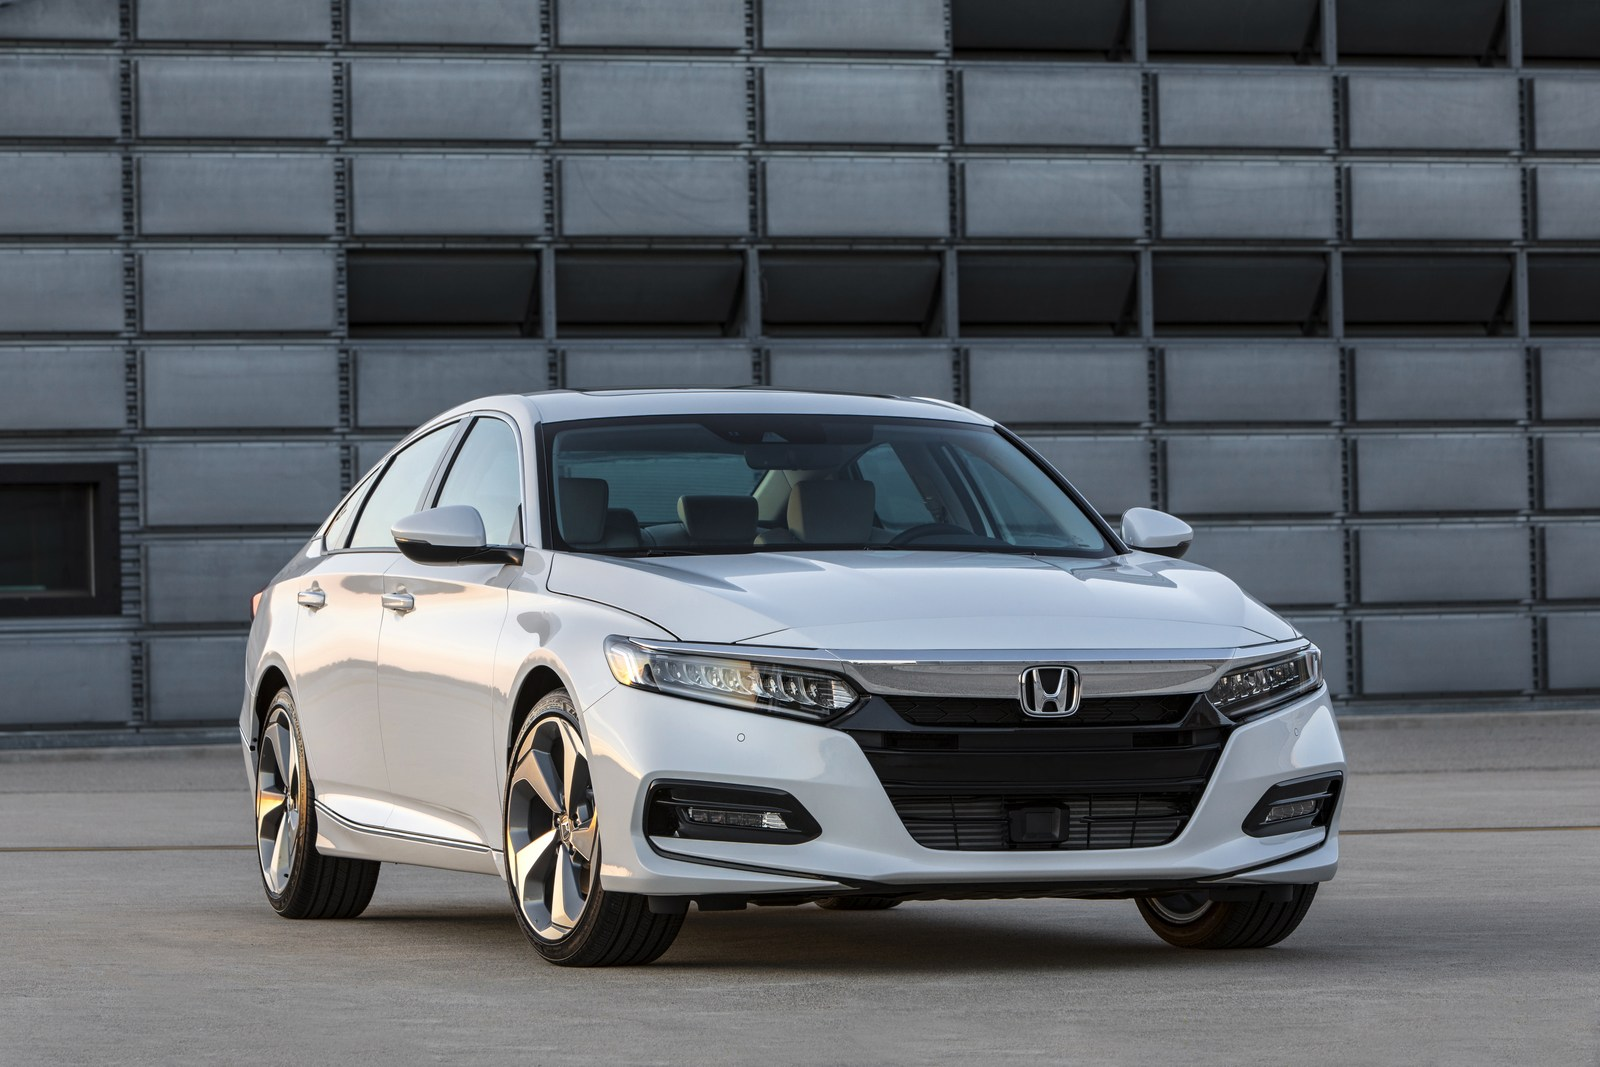 2018 honda accord hybrid fuel economy epa rated at 47 mpg. Black Bedroom Furniture Sets. Home Design Ideas